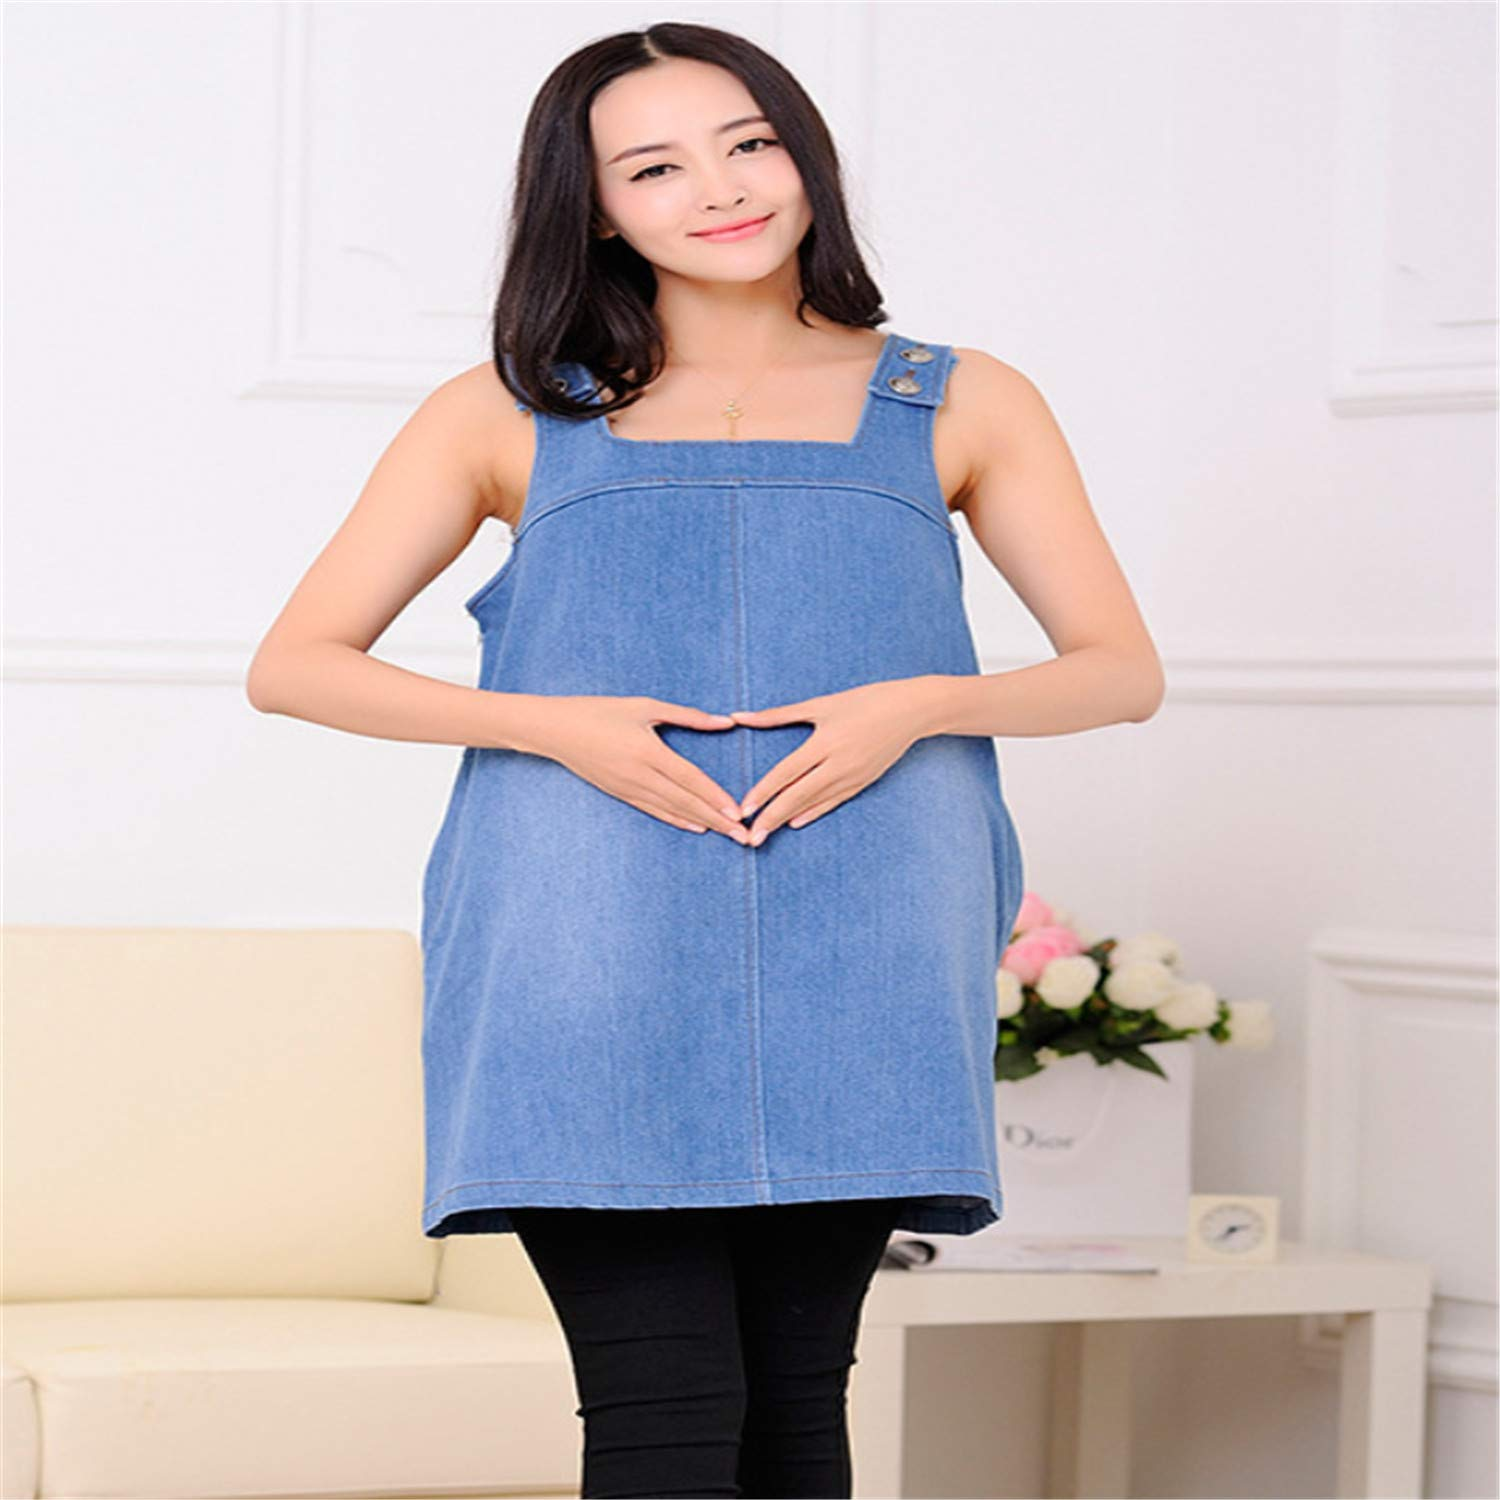 Radiation Predection Apron for Pregnant,Radiation Predection Vest Silver Fiber Shirt Radiation Predection Skirt Four Seasons,360° Shielding Radiation